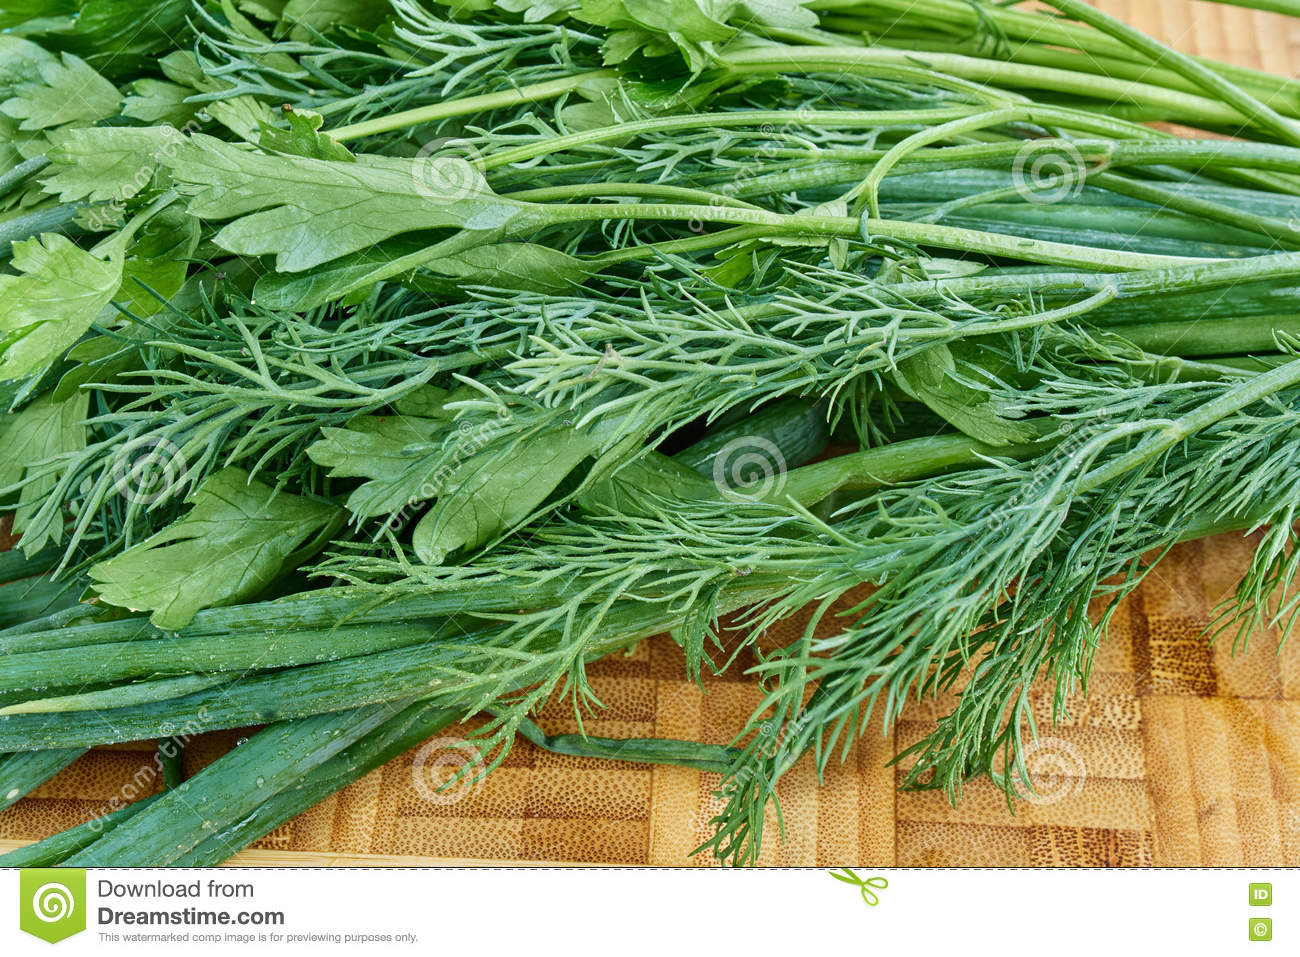 Chives Parsley dill